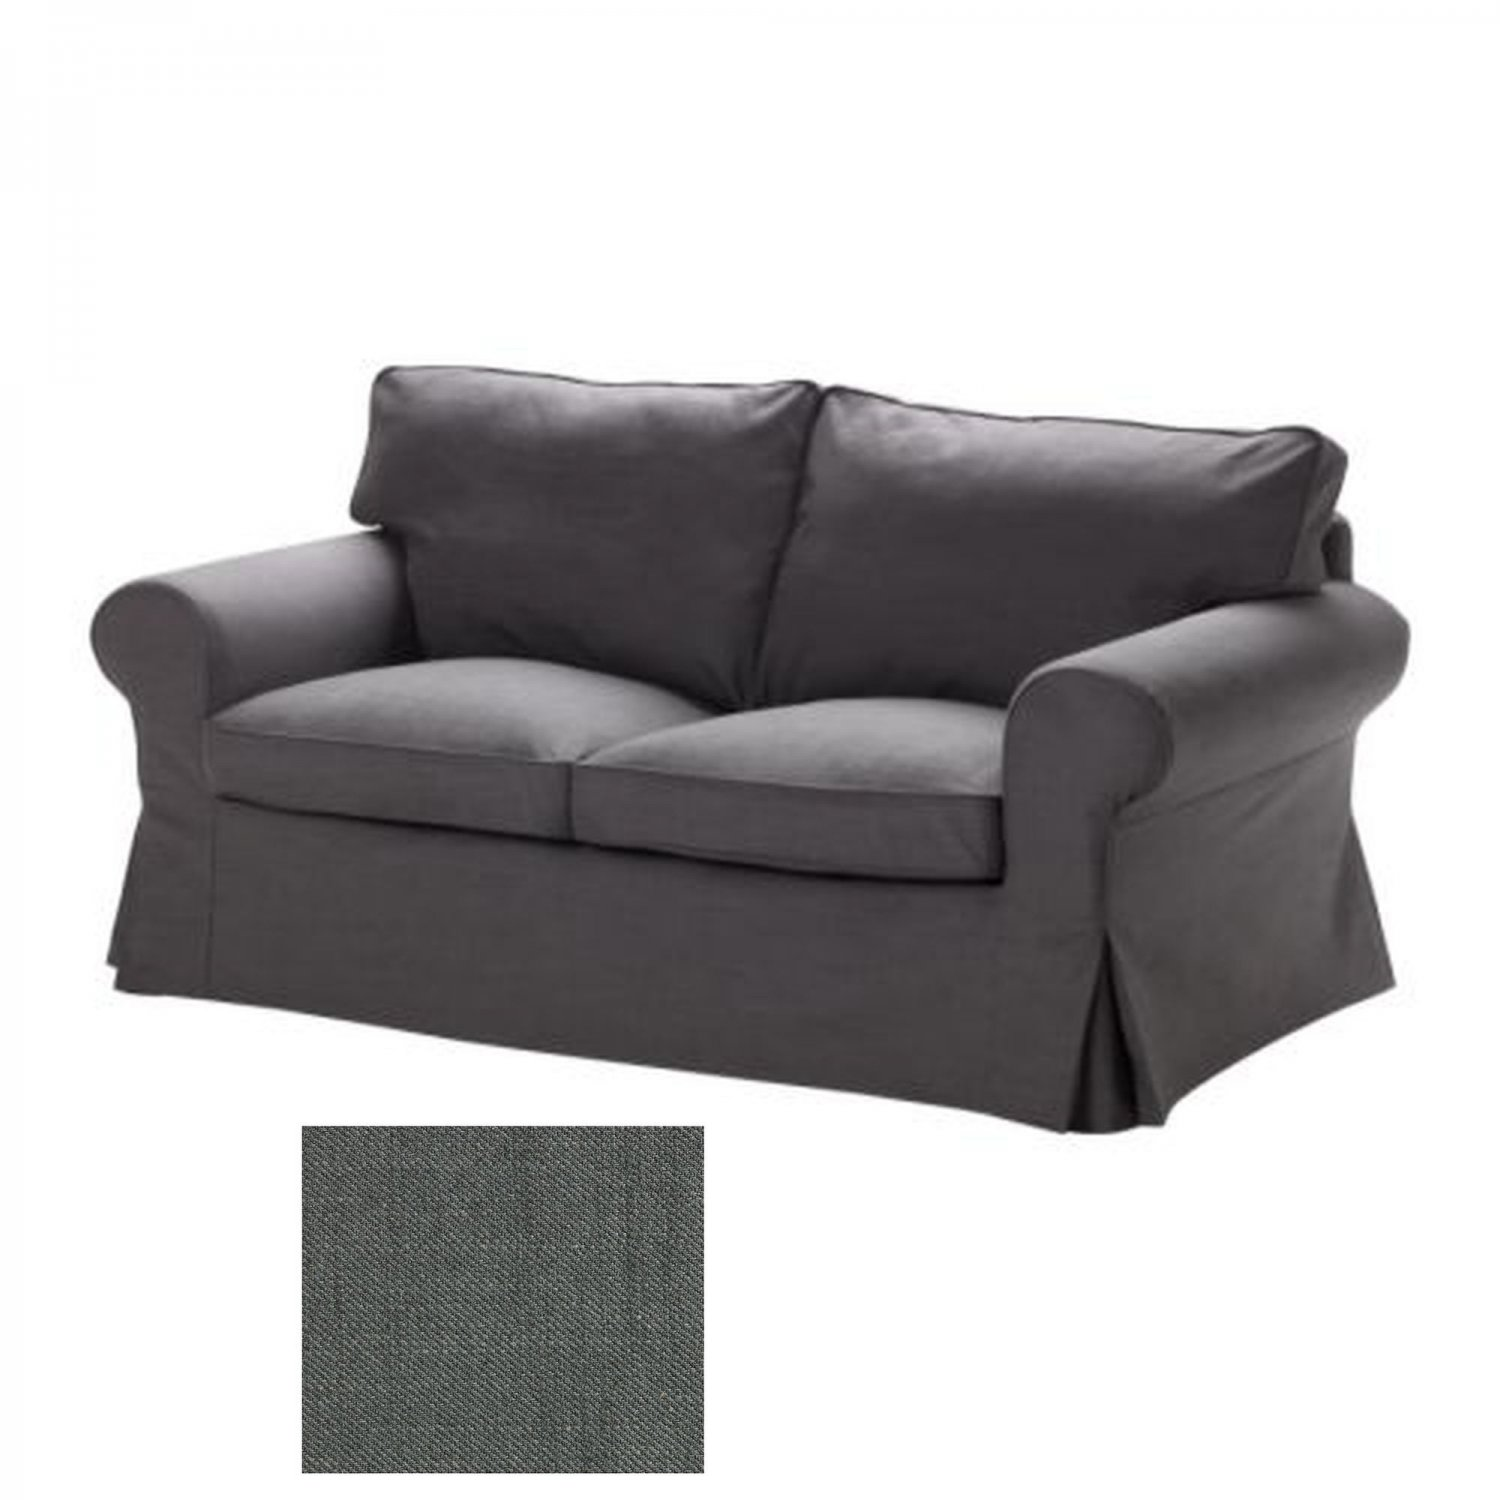 ikea ektorp 2 seat sofa slipcover loveseat cover svanby gray grey. Black Bedroom Furniture Sets. Home Design Ideas